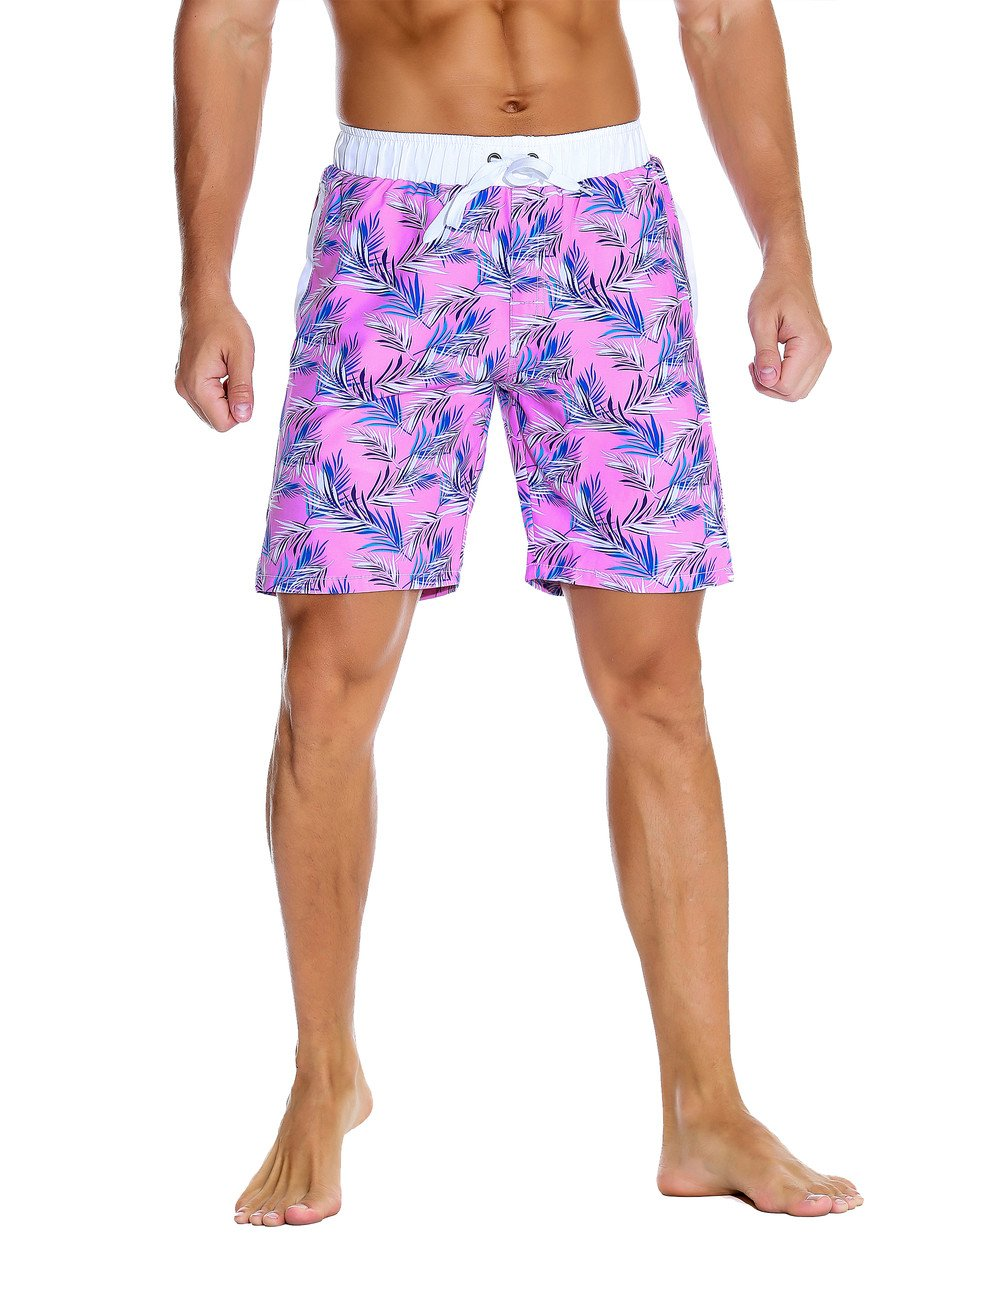 Nonwe Men's Beach Shorts Printed Quick Dry Drawsting with 3 Pockets Light Purple 30